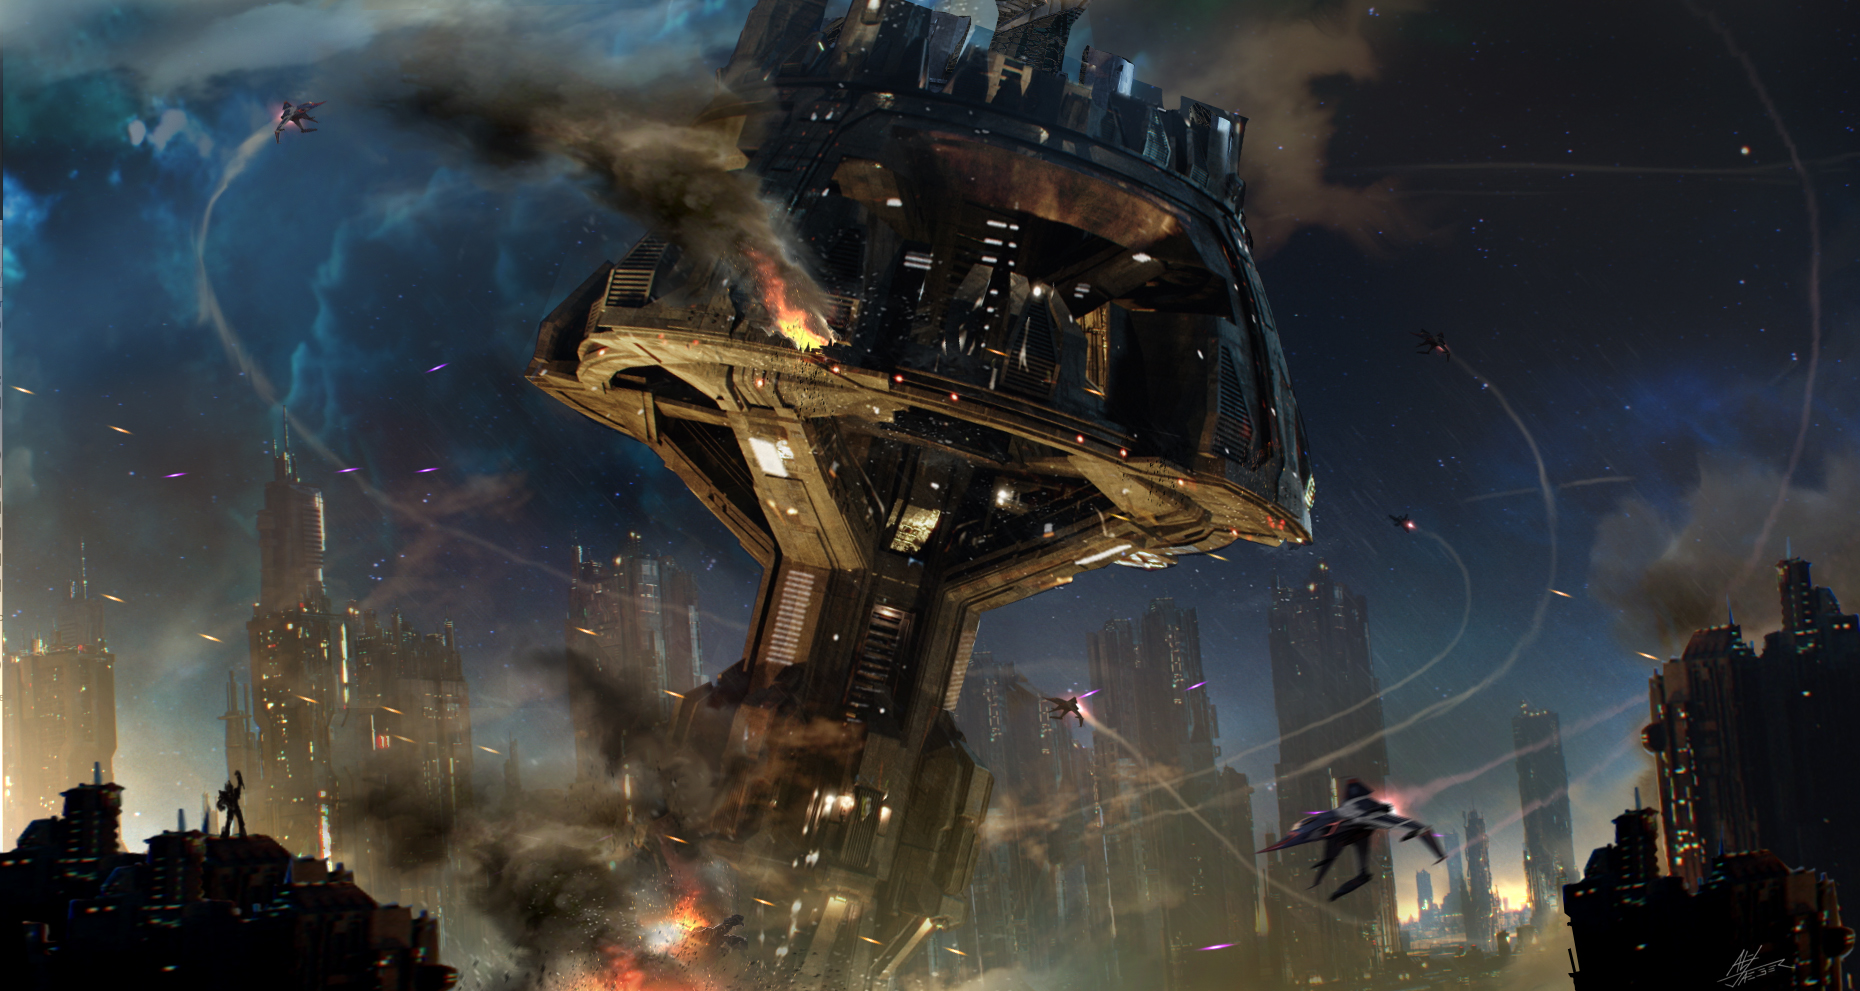 Exclusive BUMBLEBEE Concept Art Gives a Detailed Look at Cybertron_12